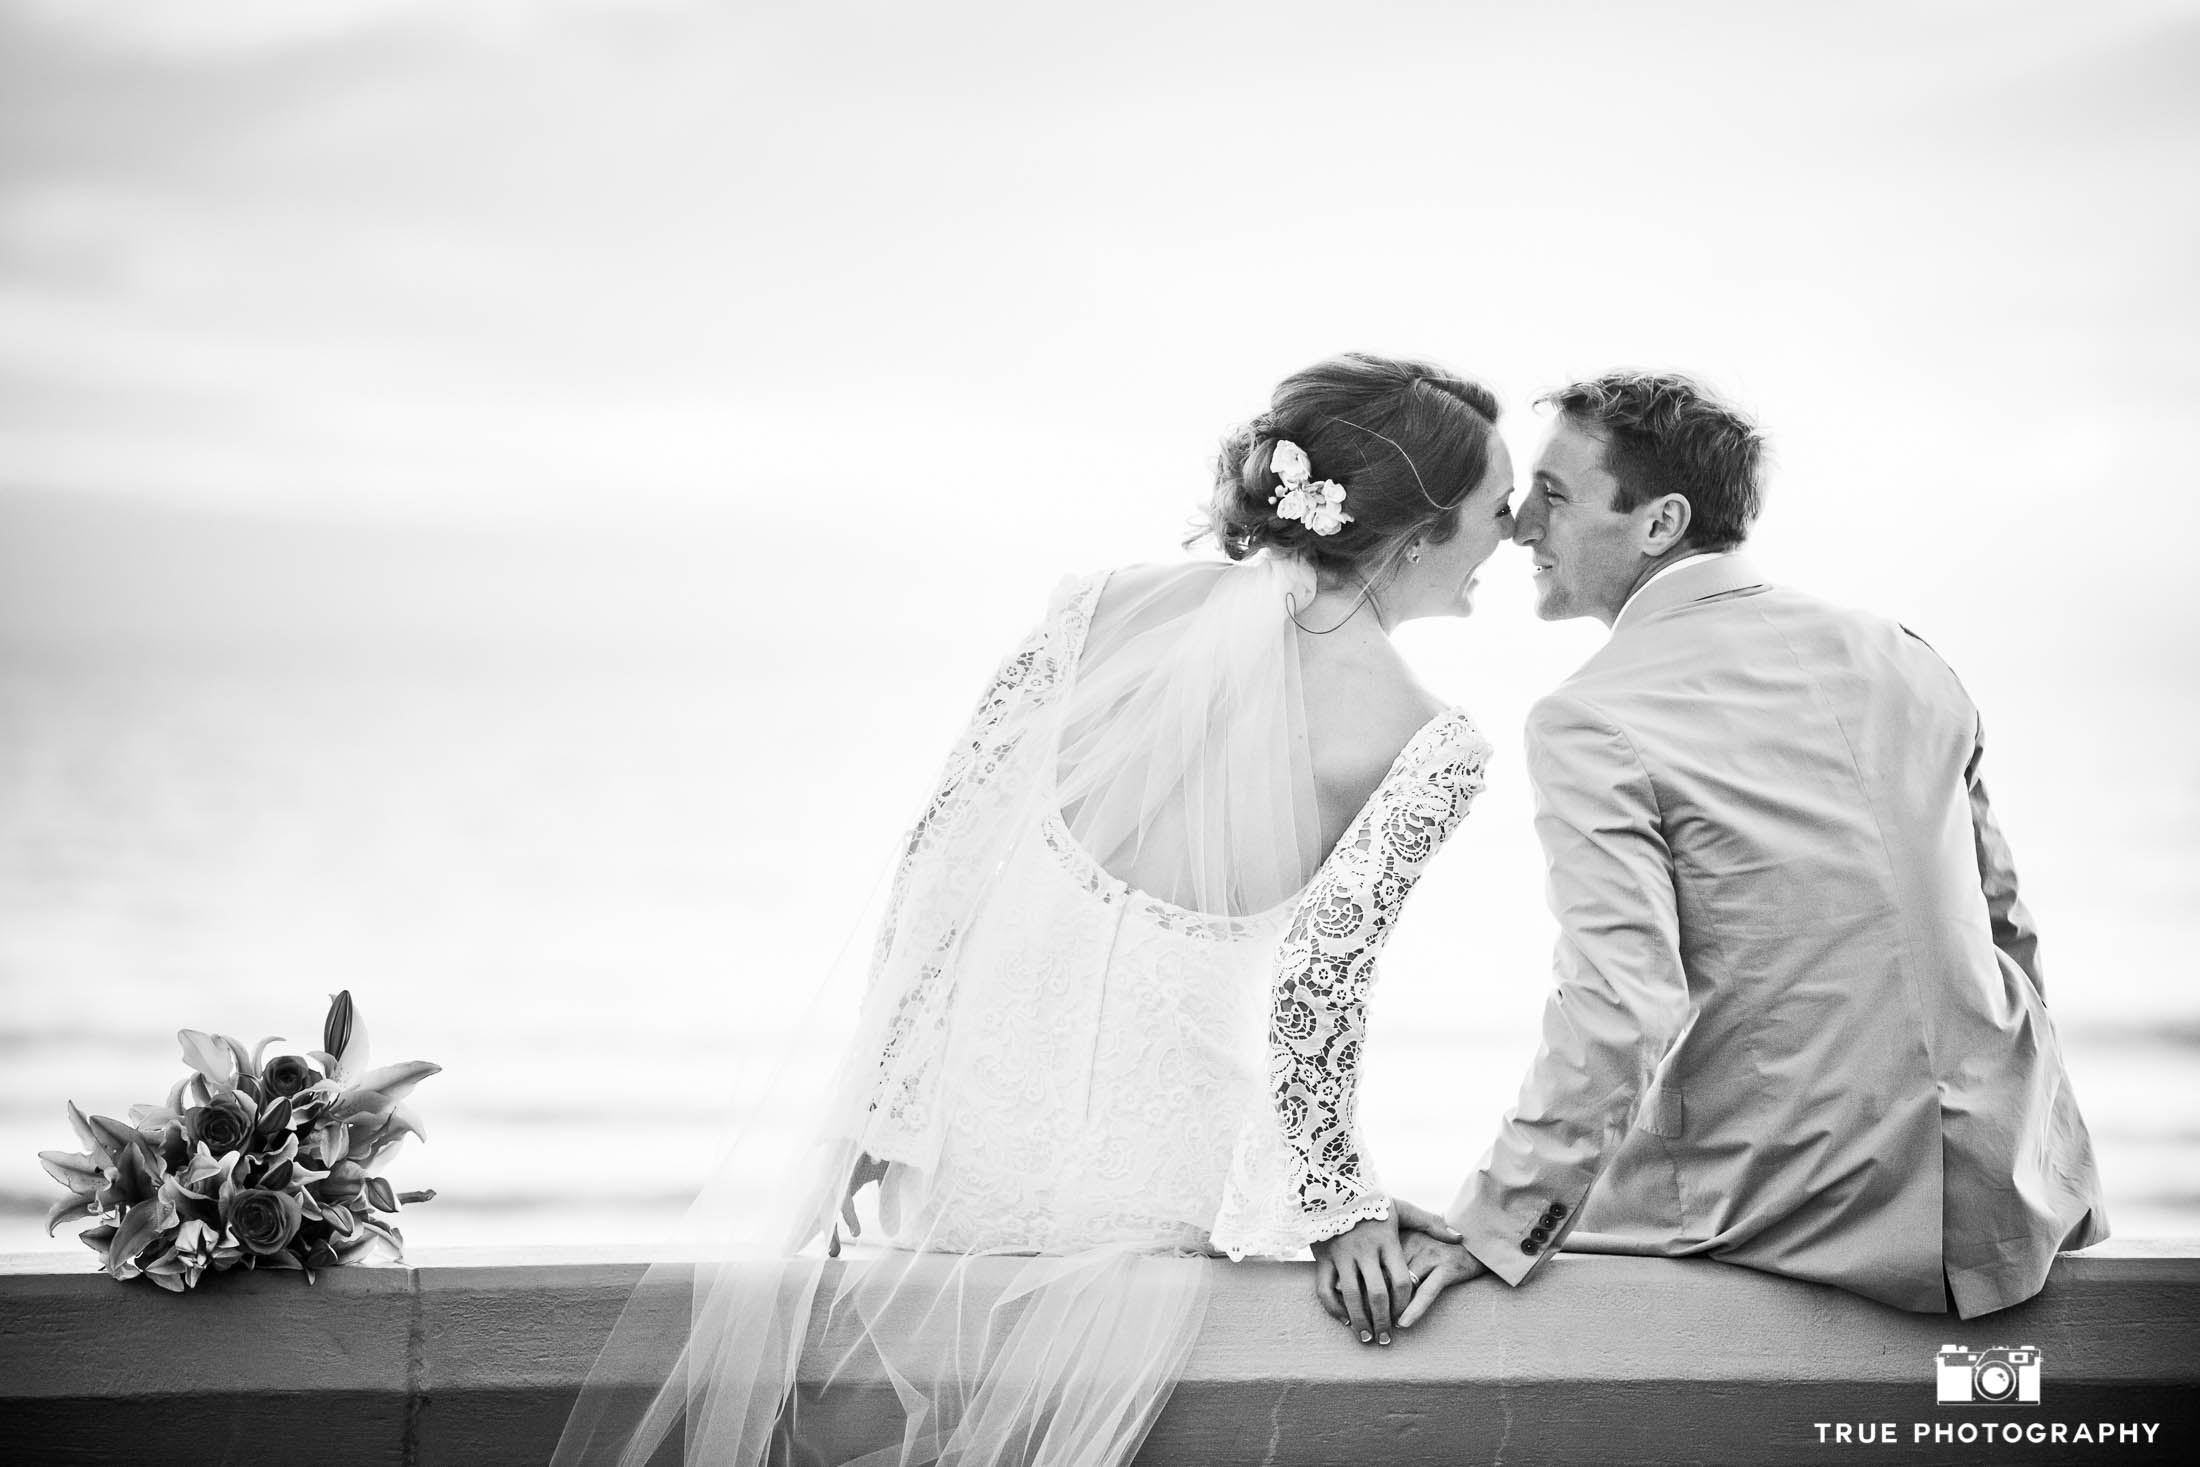 Coronado beach bride and groom portrait in black and white